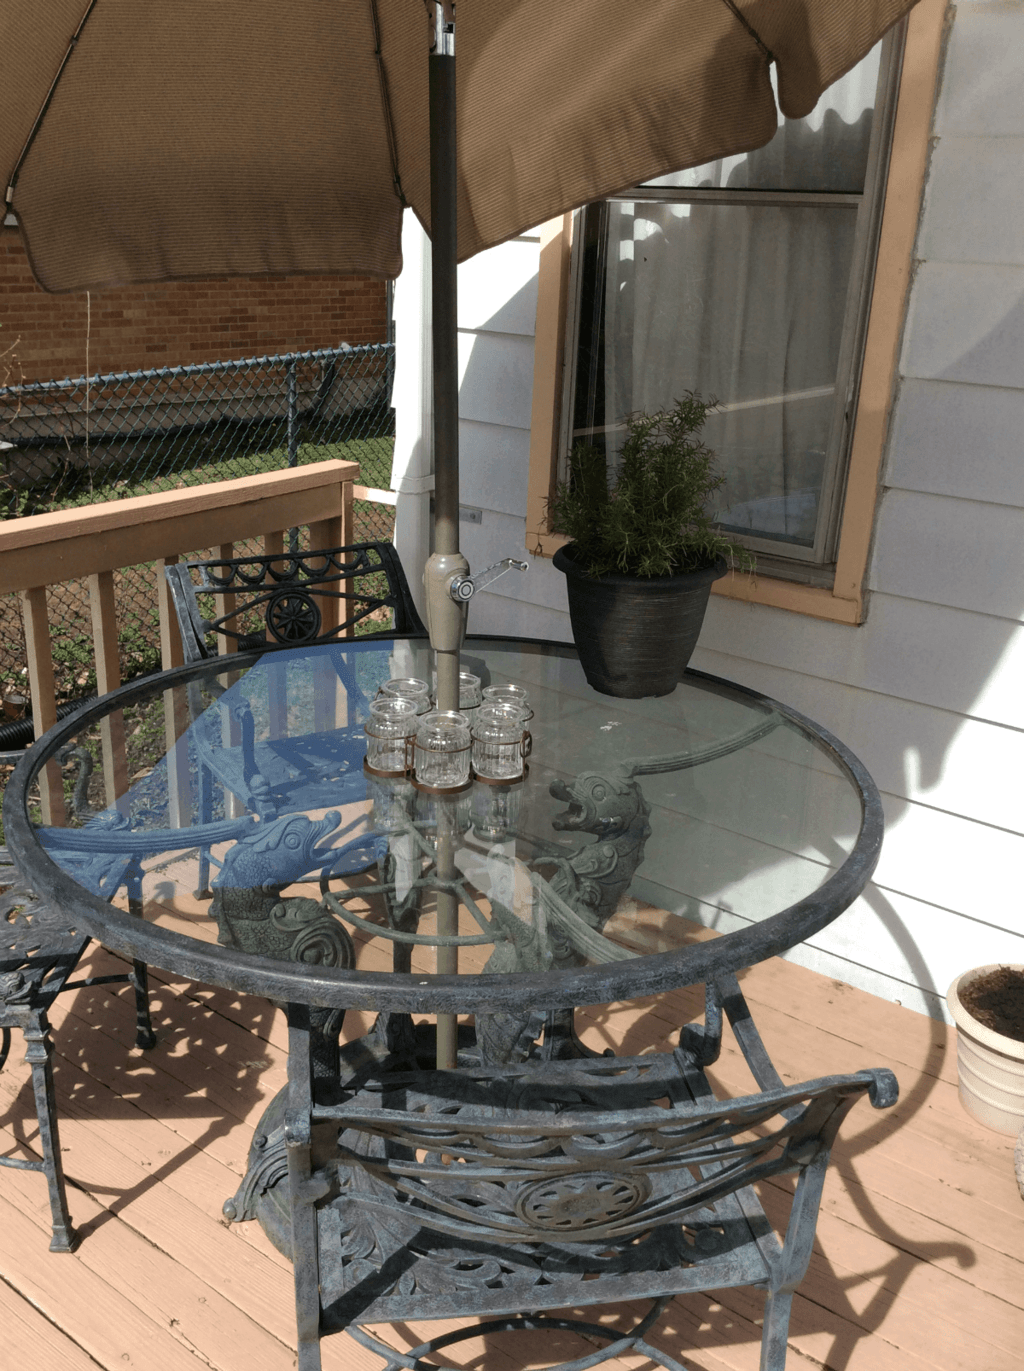 The journey of making our house a home has been a long one, and Big Lots helped me turn our outdoor space back into a relaxing oasis with wonderful patio furniture and adorable accessories!